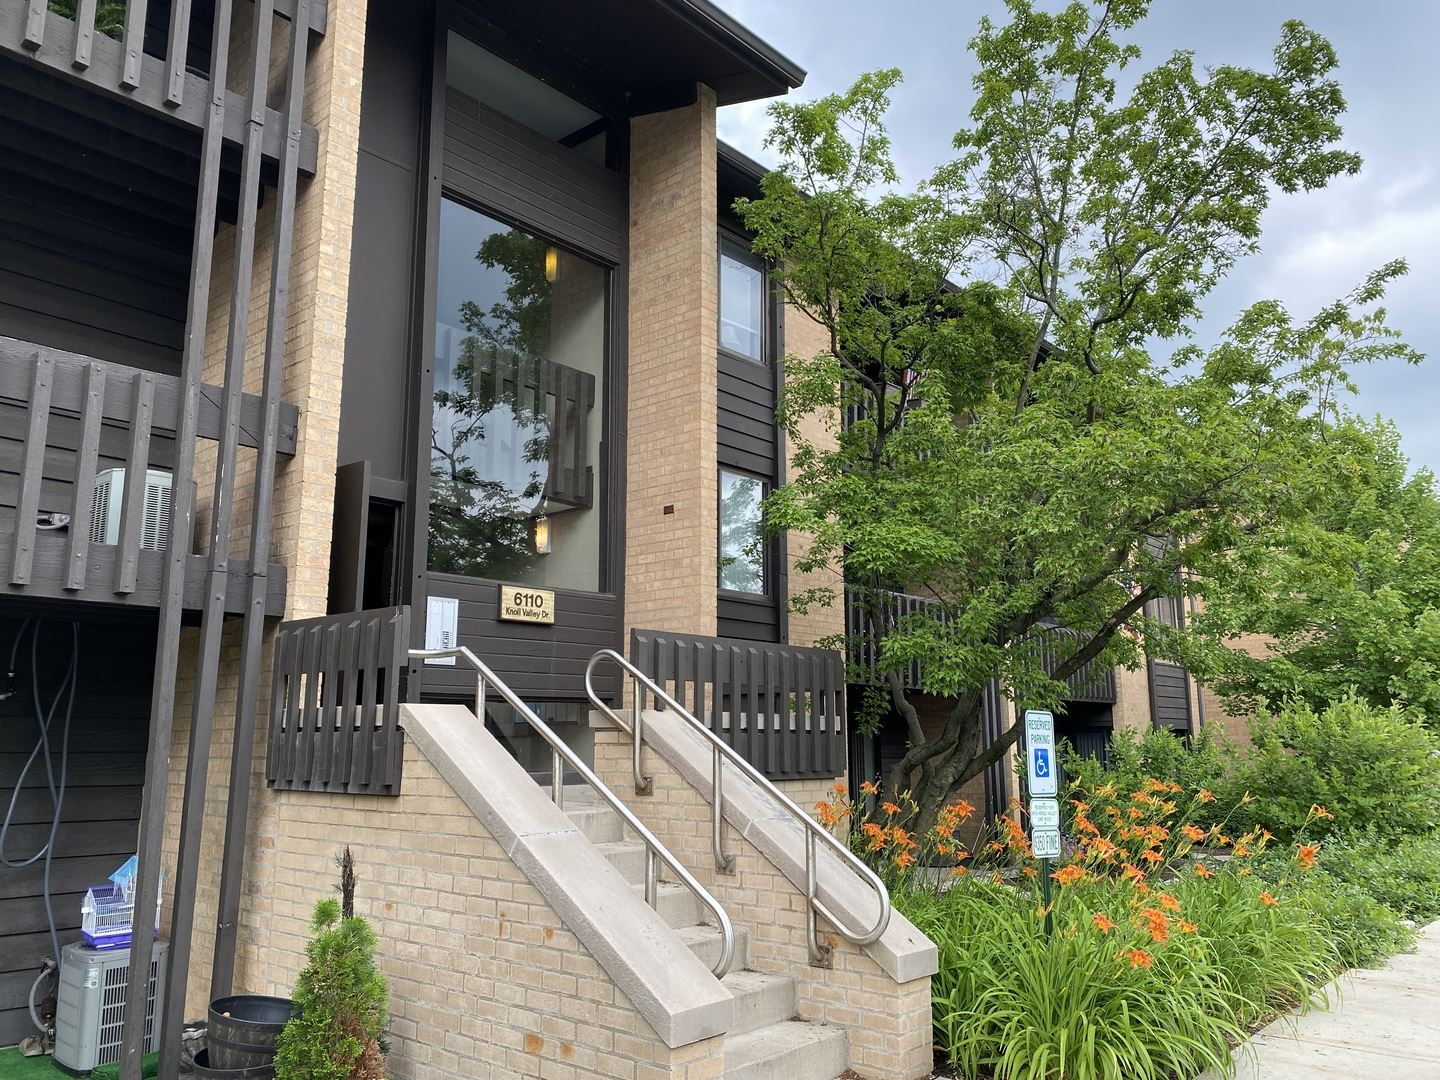 6110 Knoll Valley Drive #301, Willowbrook, IL 60527 - #: 10763234